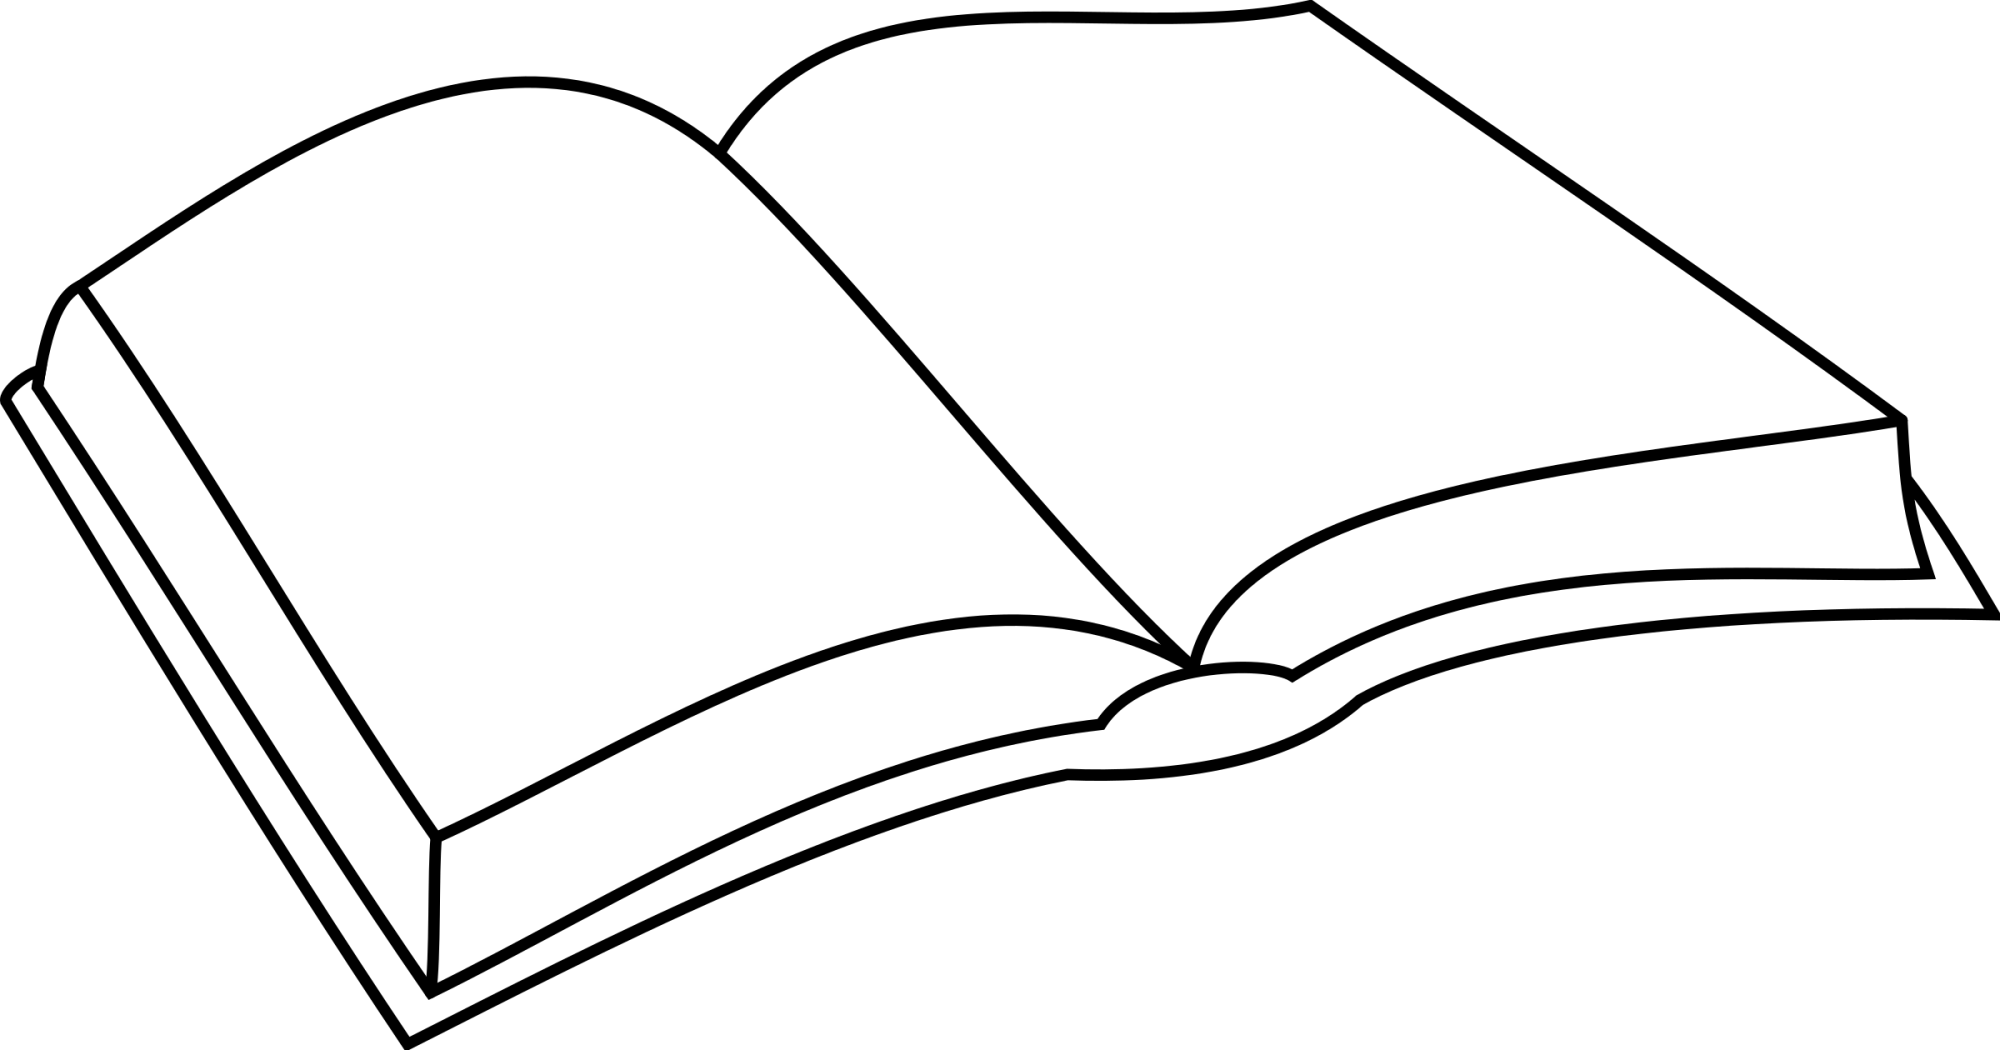 hight resolution of open book clip artlor free clipart images 2 cliparting